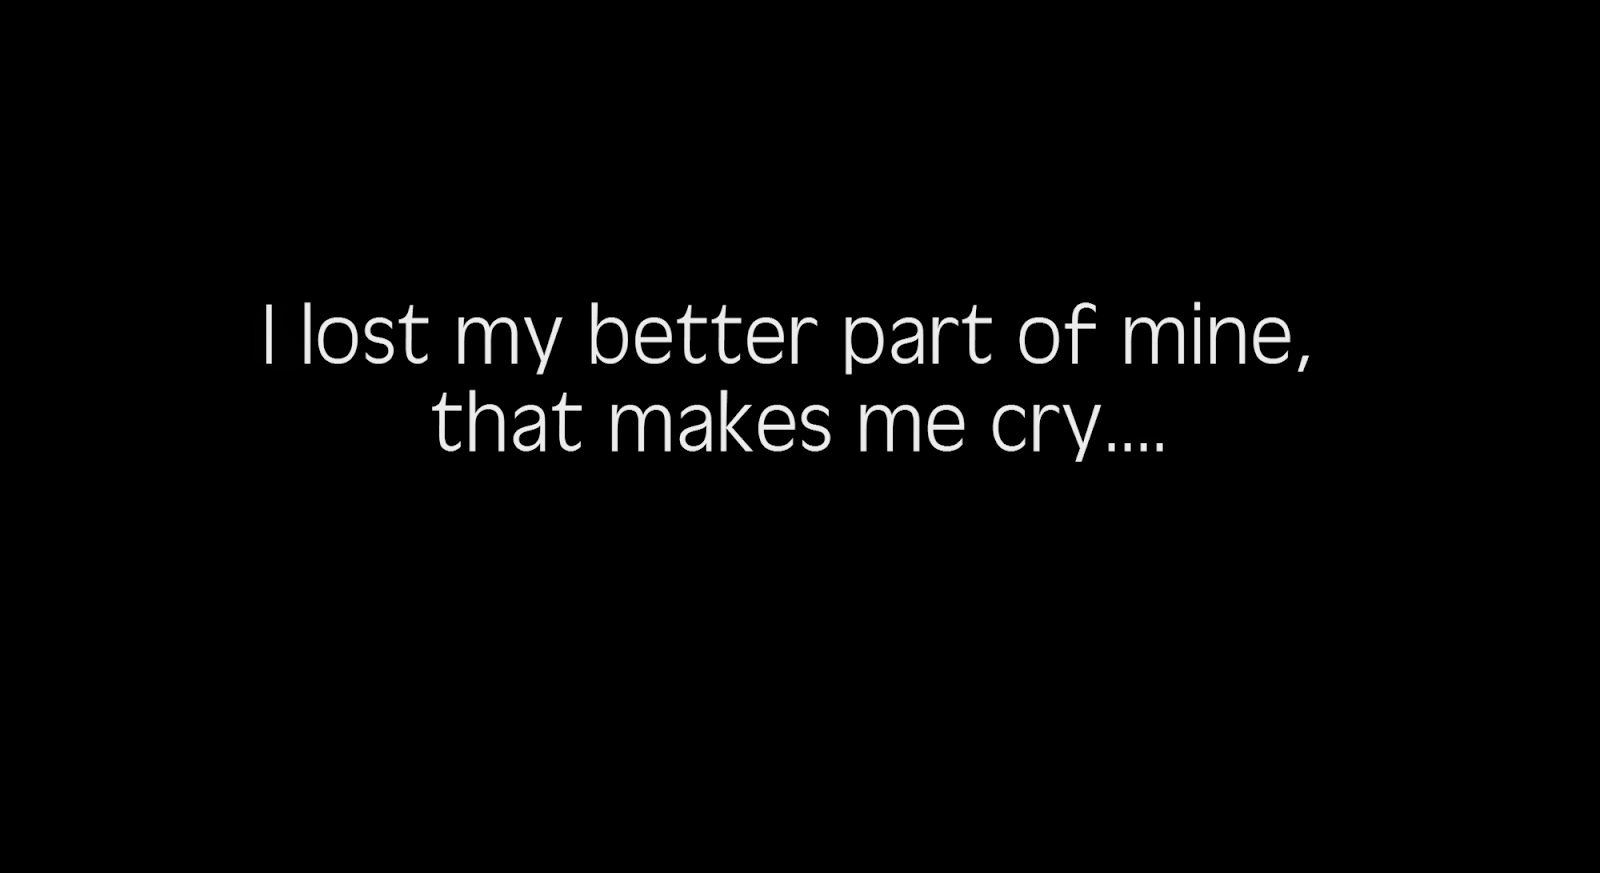 I lost my better part of mine, that makes me cry.